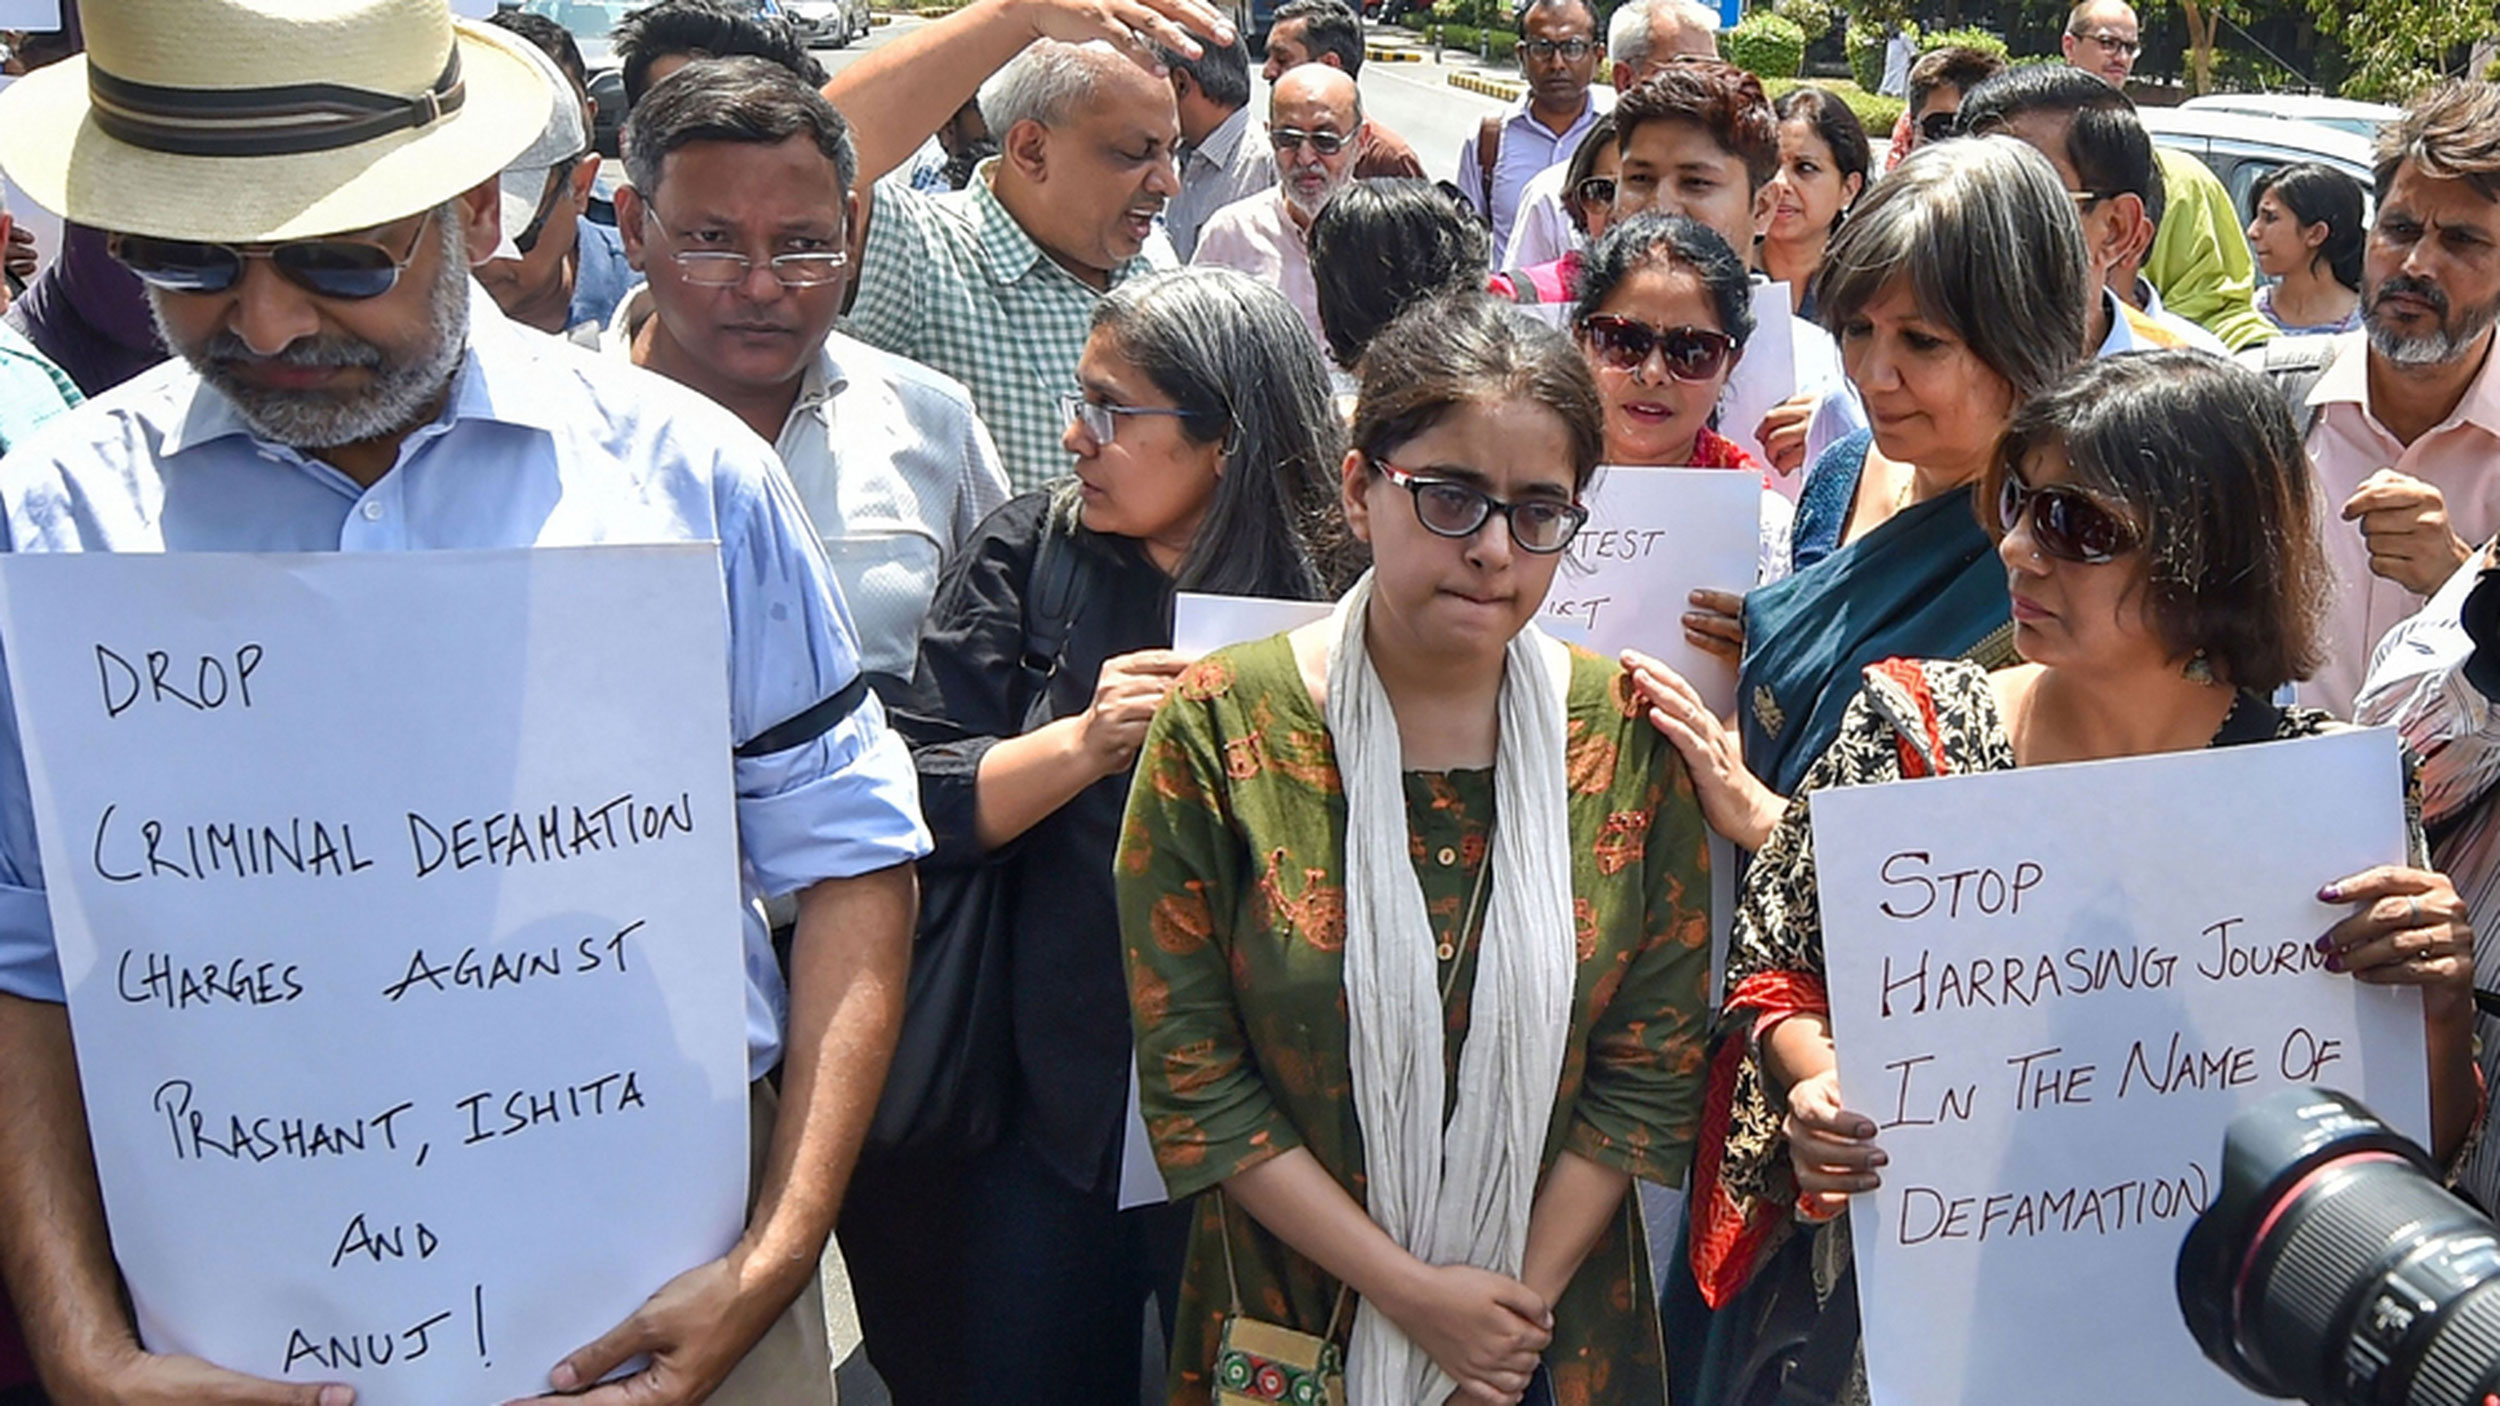 Jagisha Arora, wife of journalist Prashant Kanojia stages a protest against his arrest, at the Press Club in New Delhi on June 10, 2019.